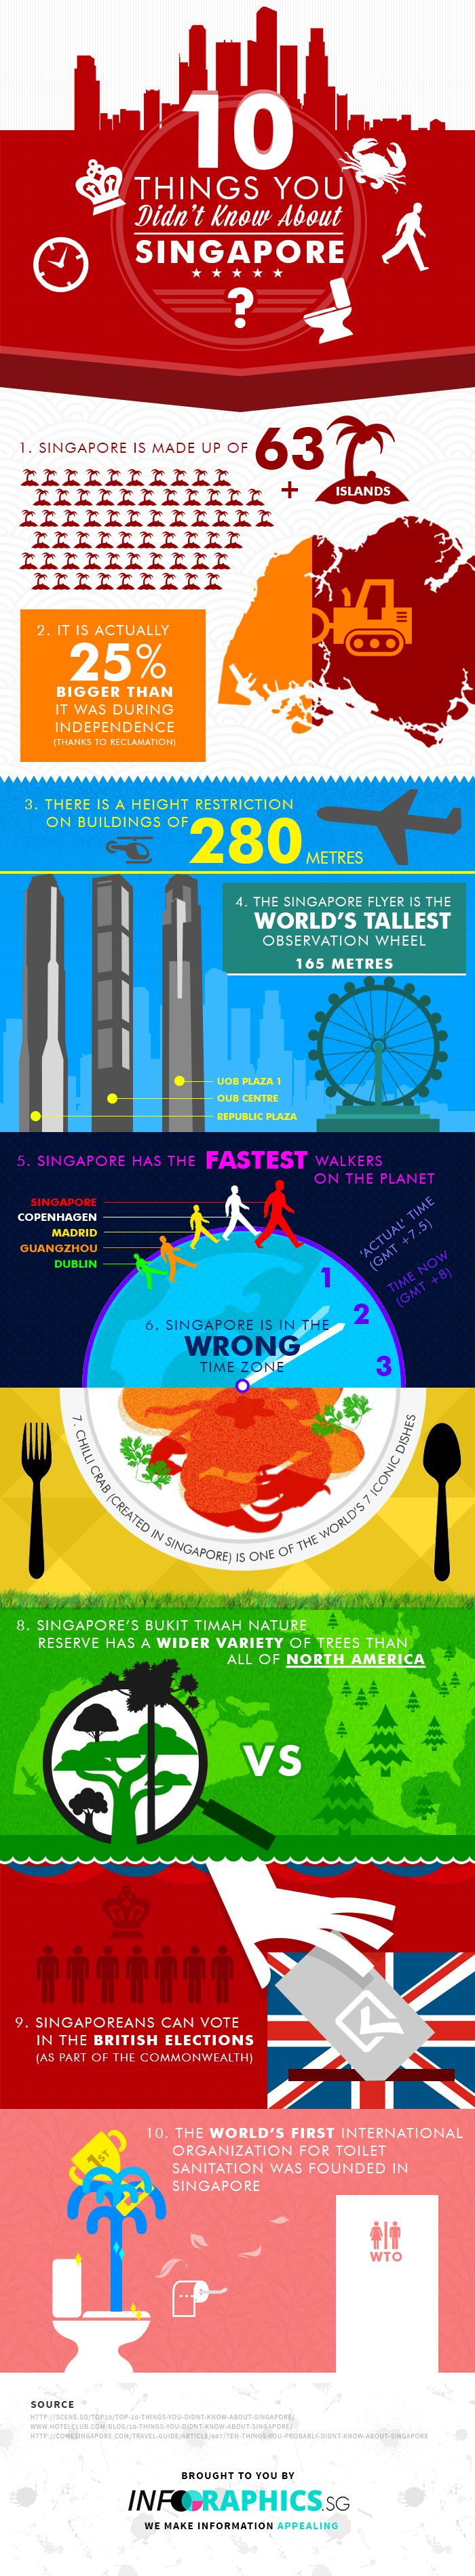 10 Things You Didn't Know About Singapore - Digital Static Infographic | Infographics.SG #singapore #infographics